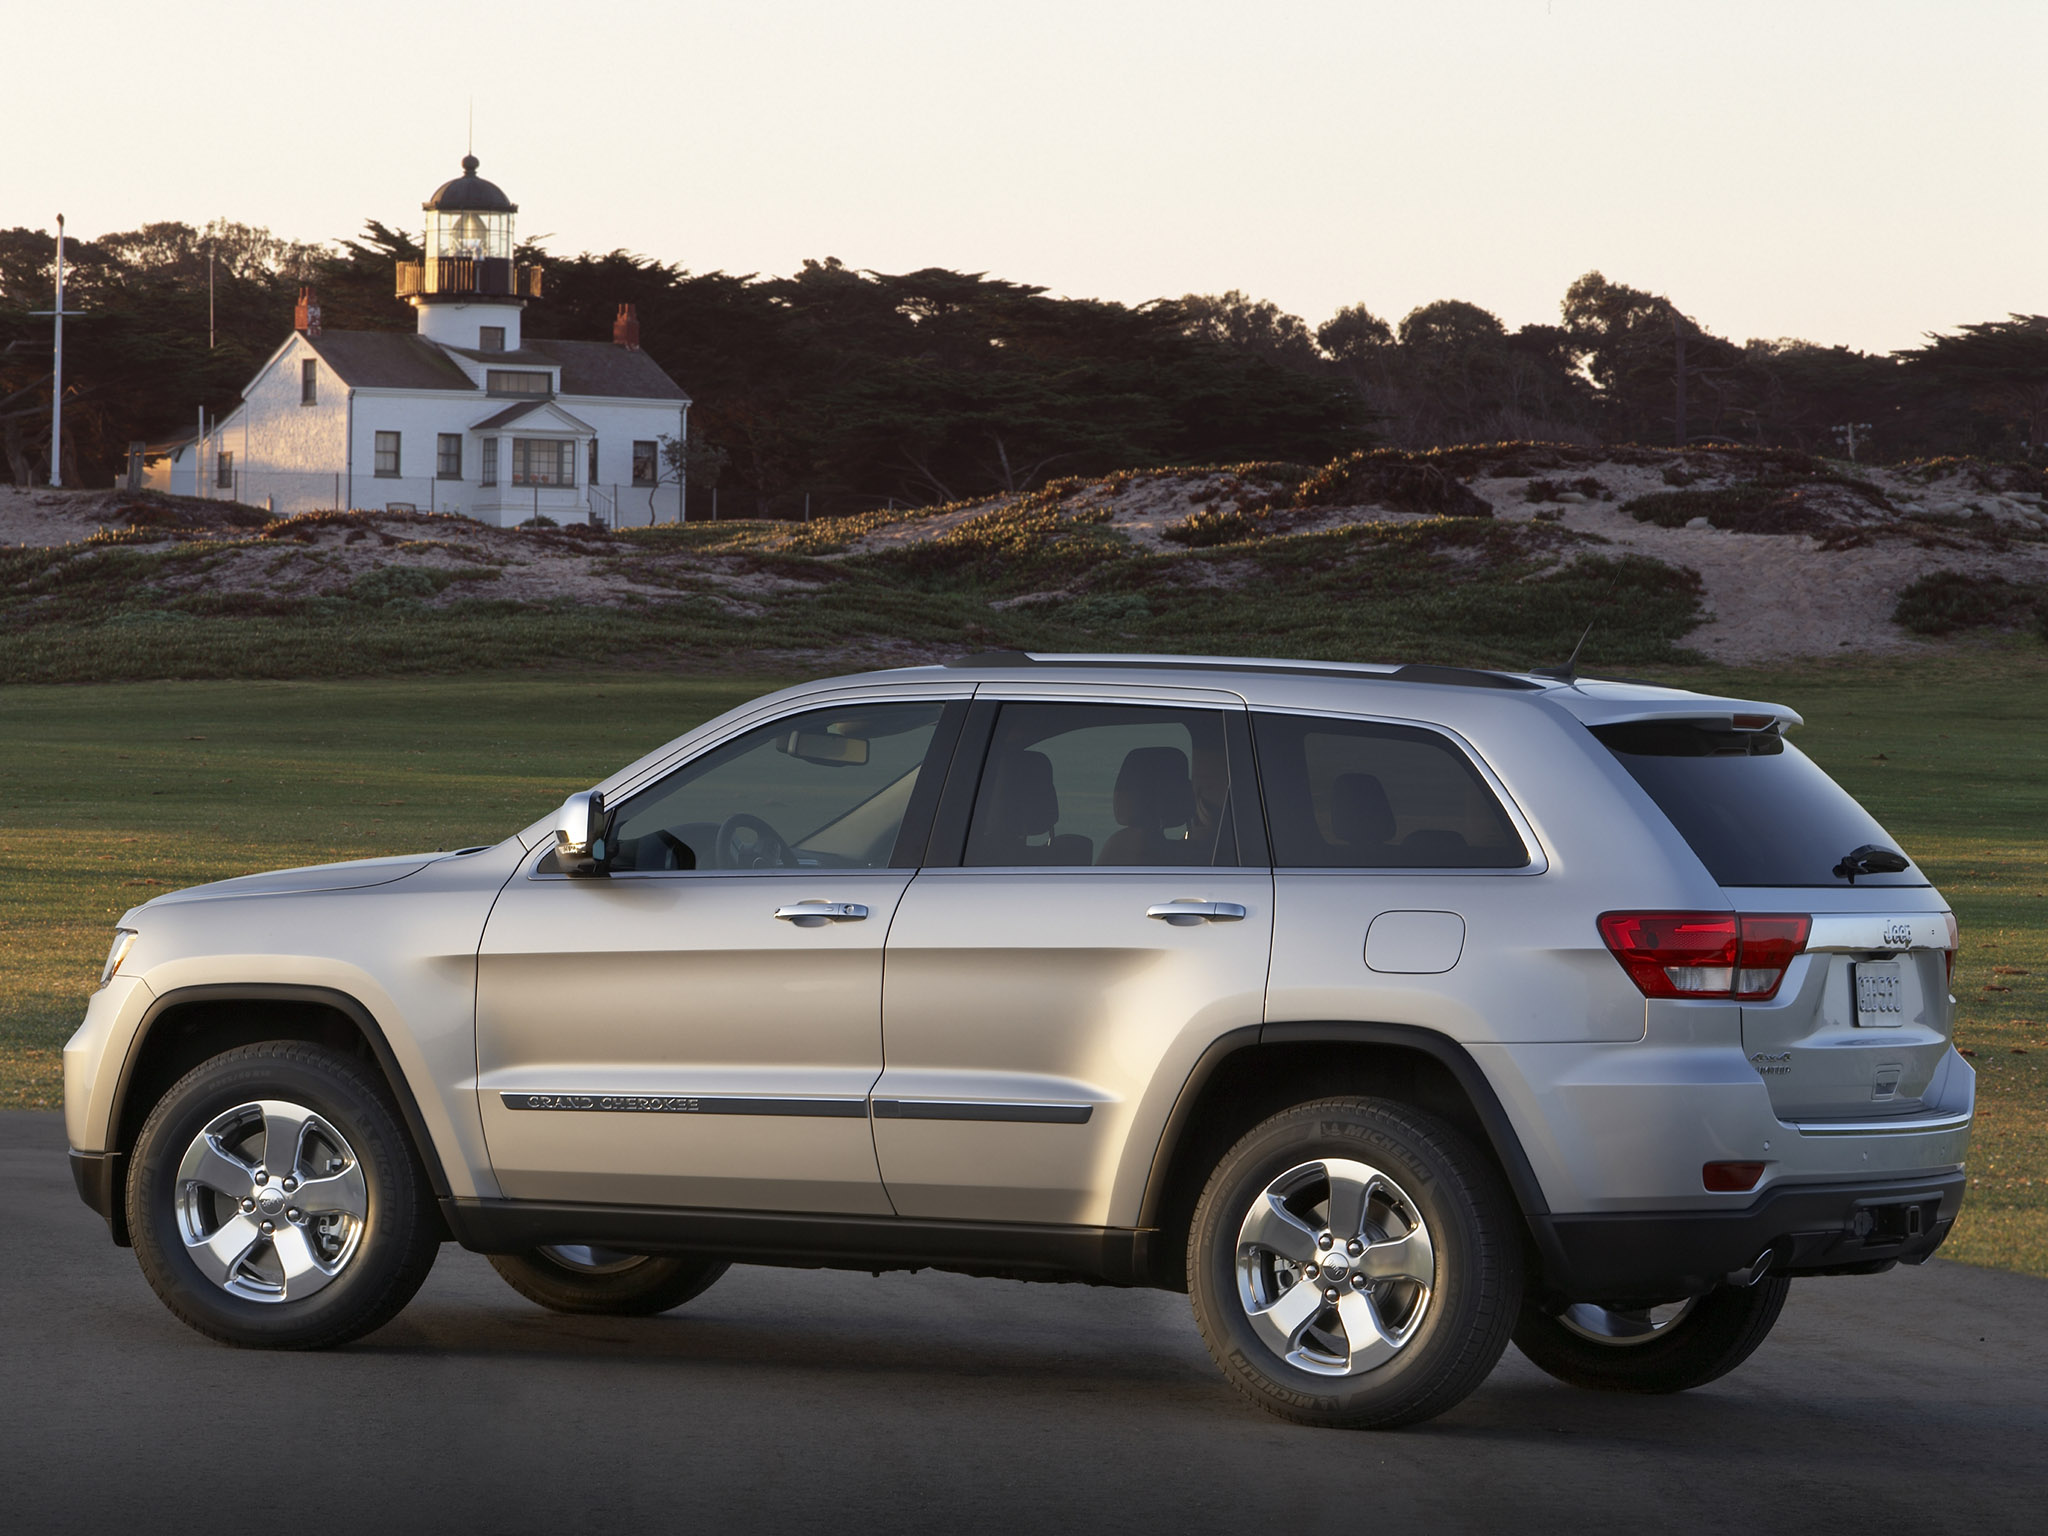 jeep grand cherokee 2010 jeep grand cherokee 2010 photo 04. Cars Review. Best American Auto & Cars Review